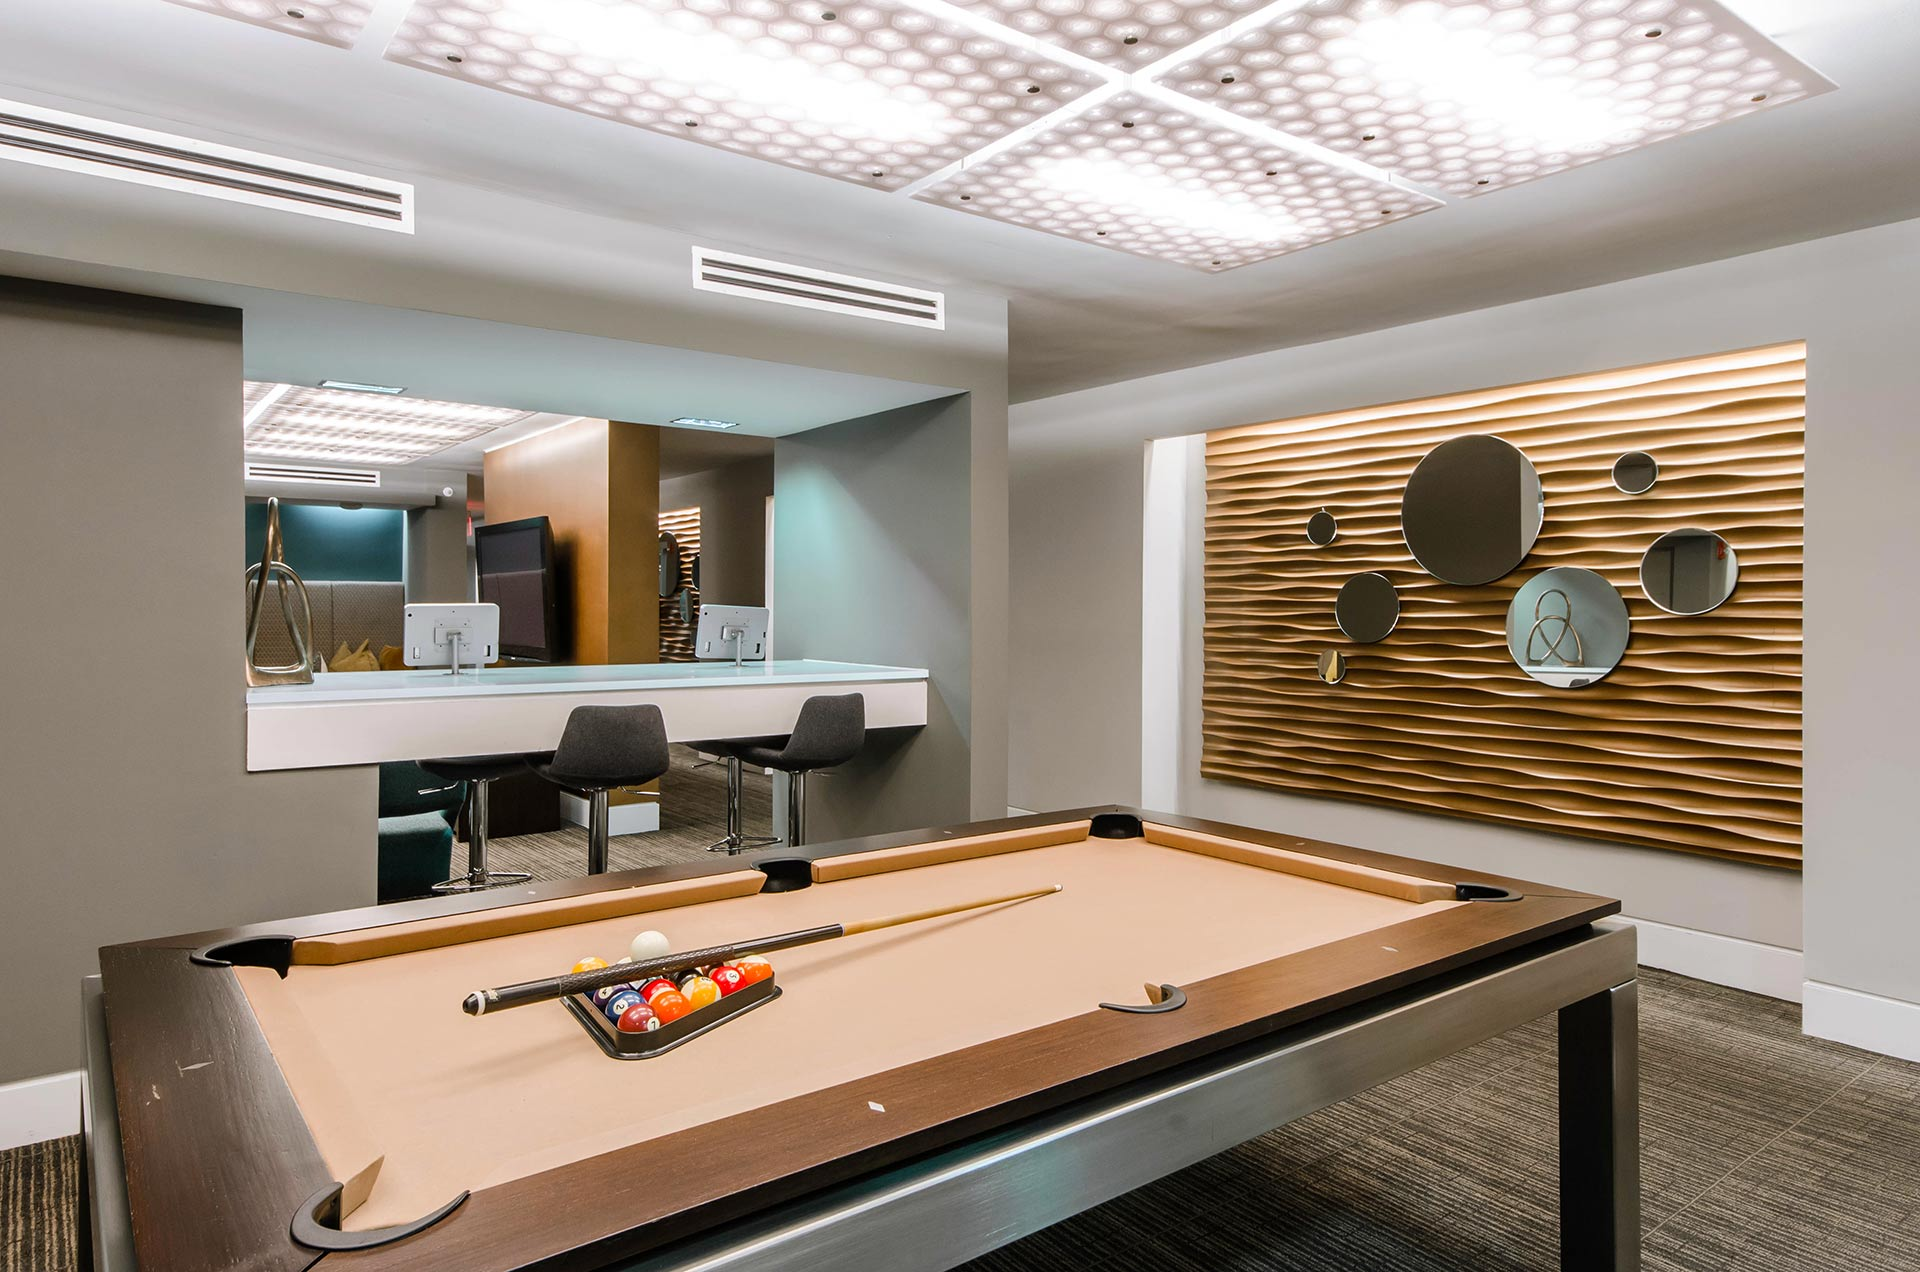 Clubroom nook with pool table and computer bar in the background